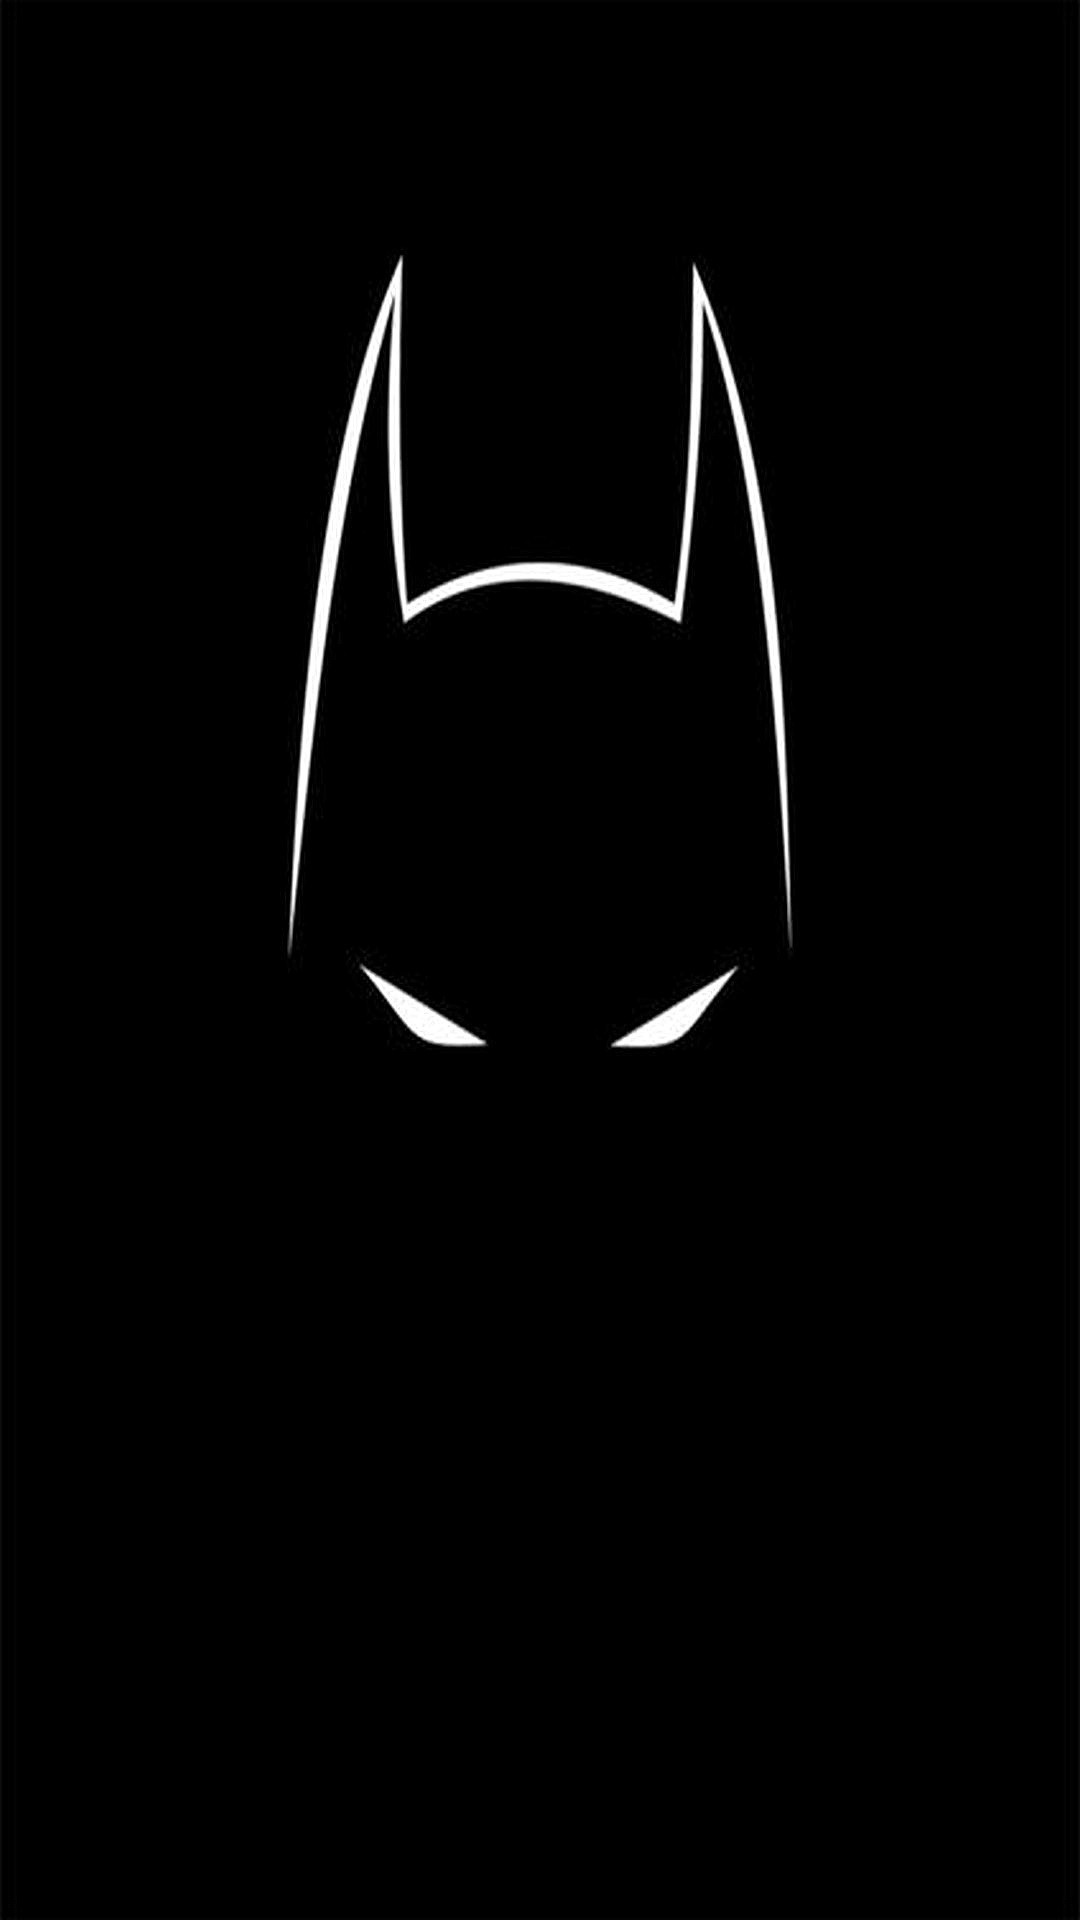 1080x1920 Best 25+ Hd batman wallpaper ideas on Pinterest | Batman artwork, Dark  knight wallpaper and Batman